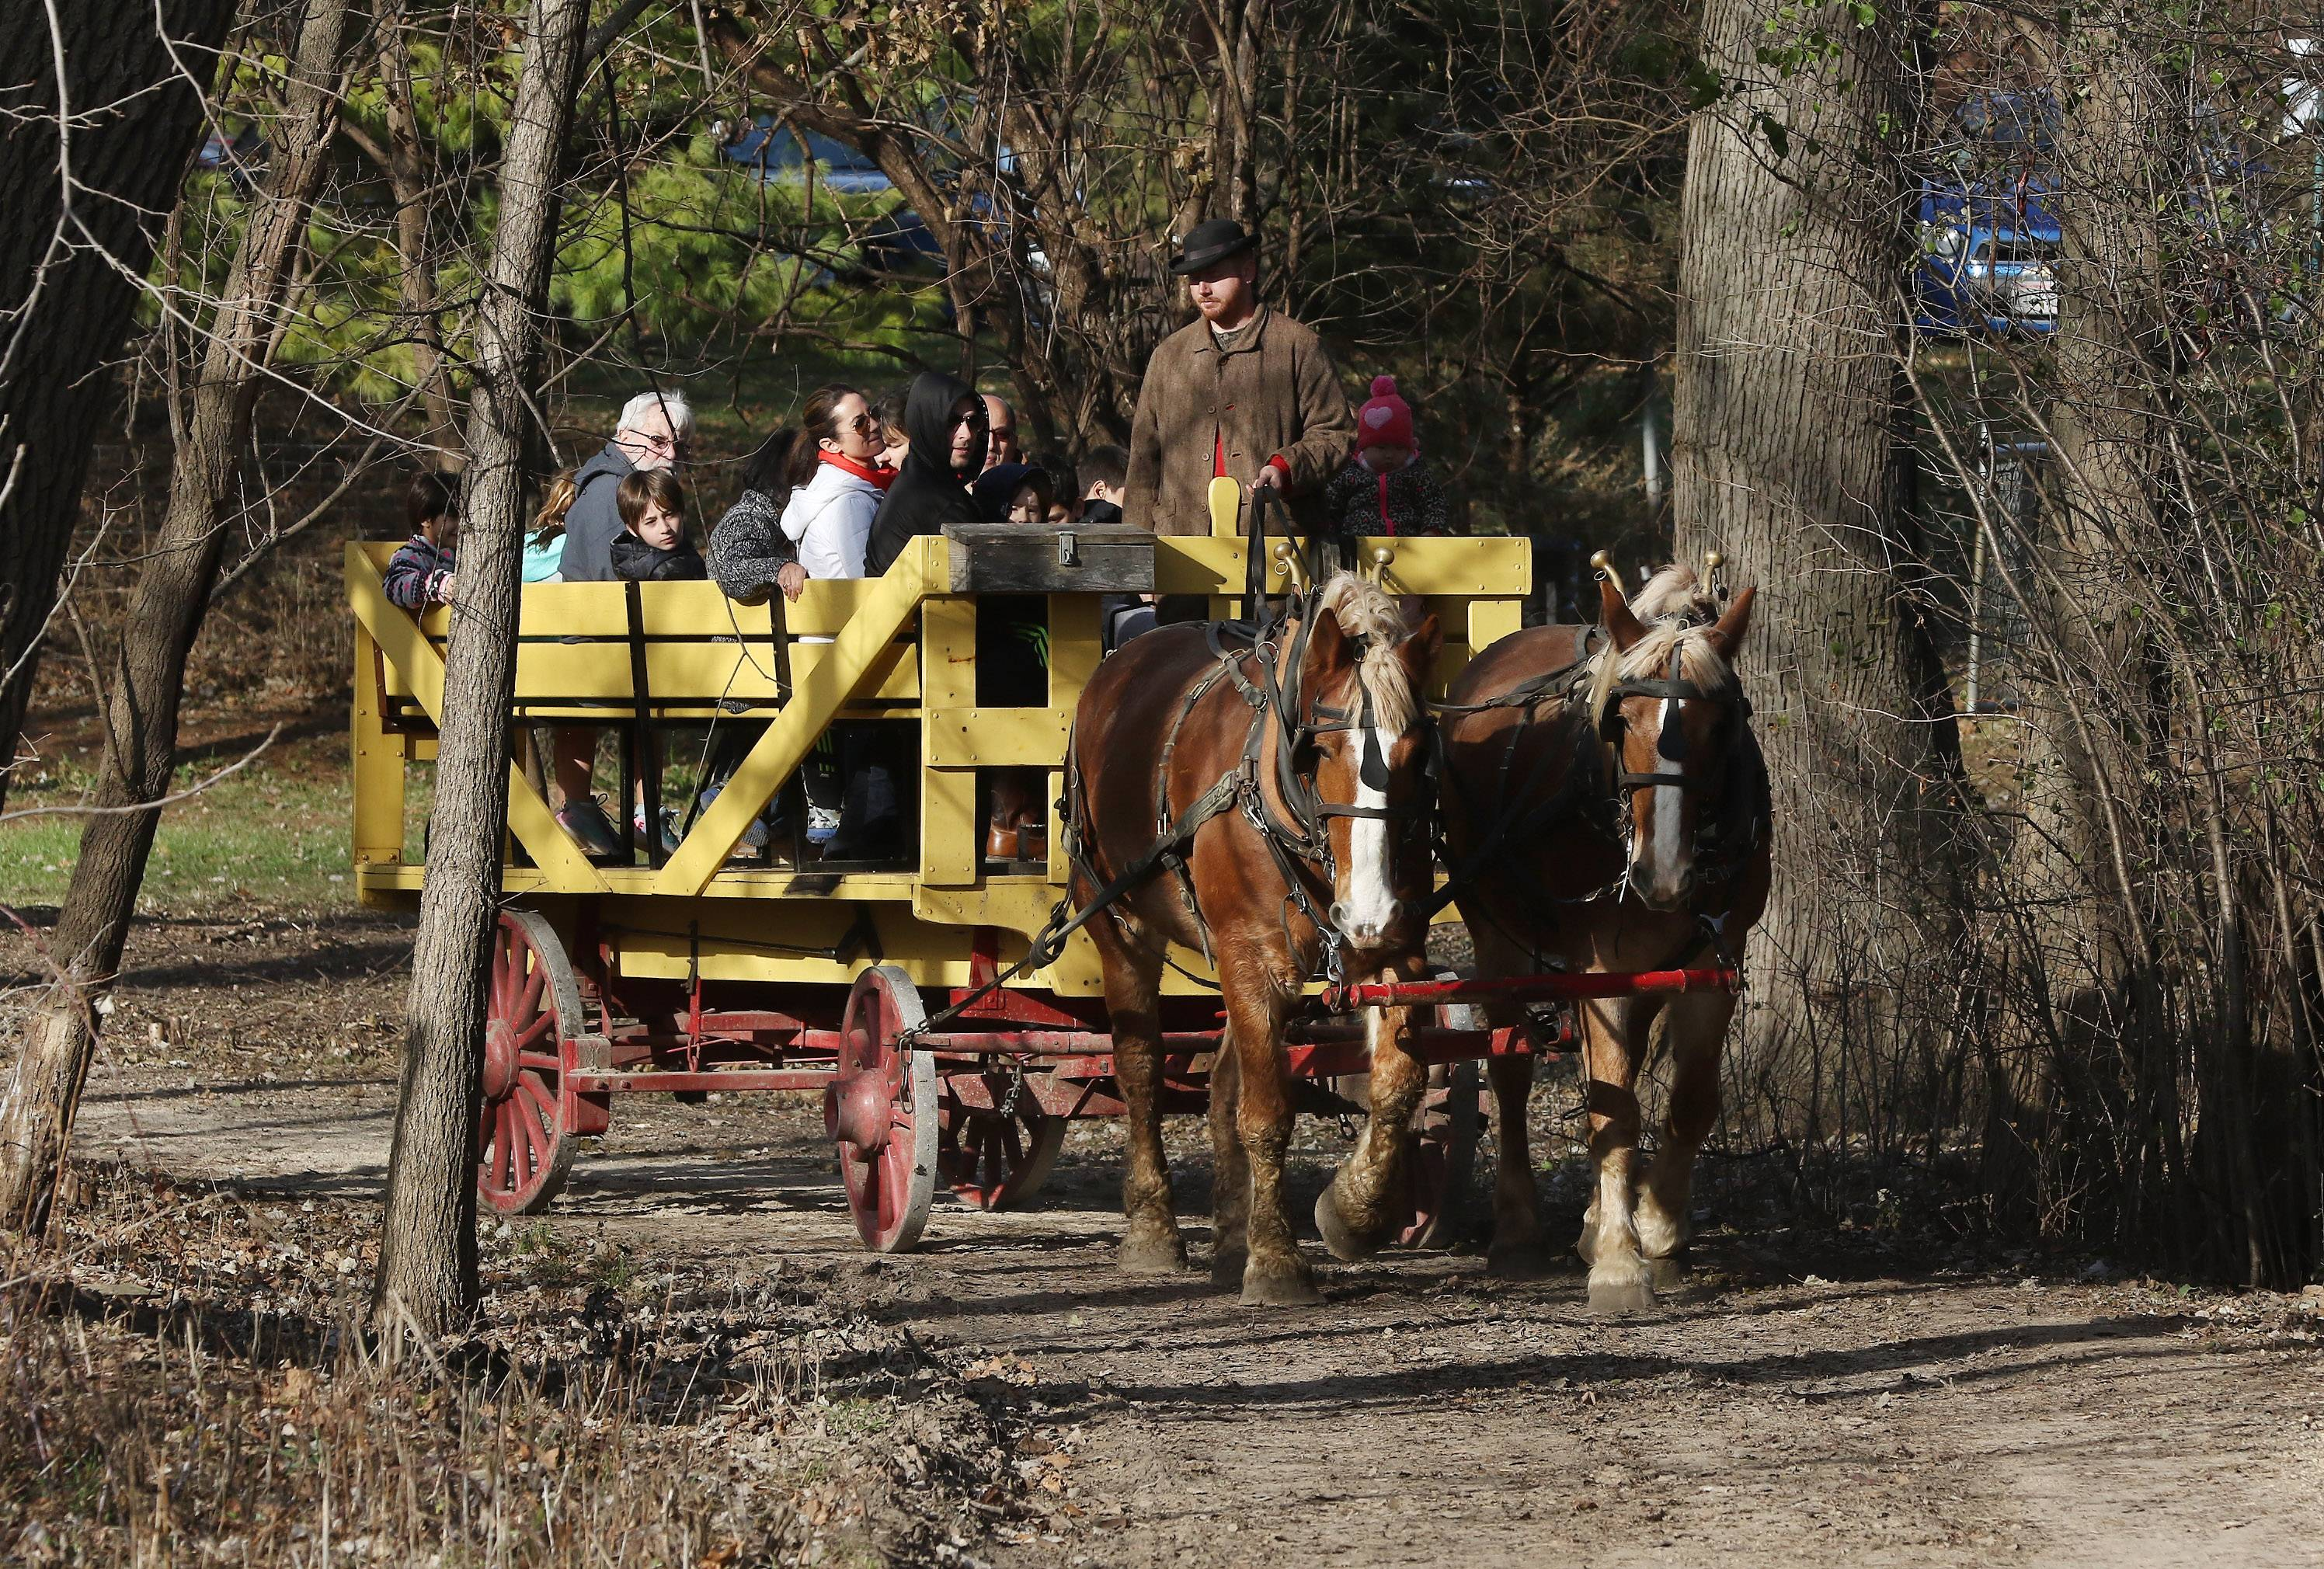 Museum educator Dan Hess drives the horse-drawn wagon as he gave rides Sunday during Christmas in the Valley at Spring Valley Nature Center in Schaumburg. The Schaumburg Park District gave visitors a chance to experience the holidays as they were celebrated in the late 1800s.